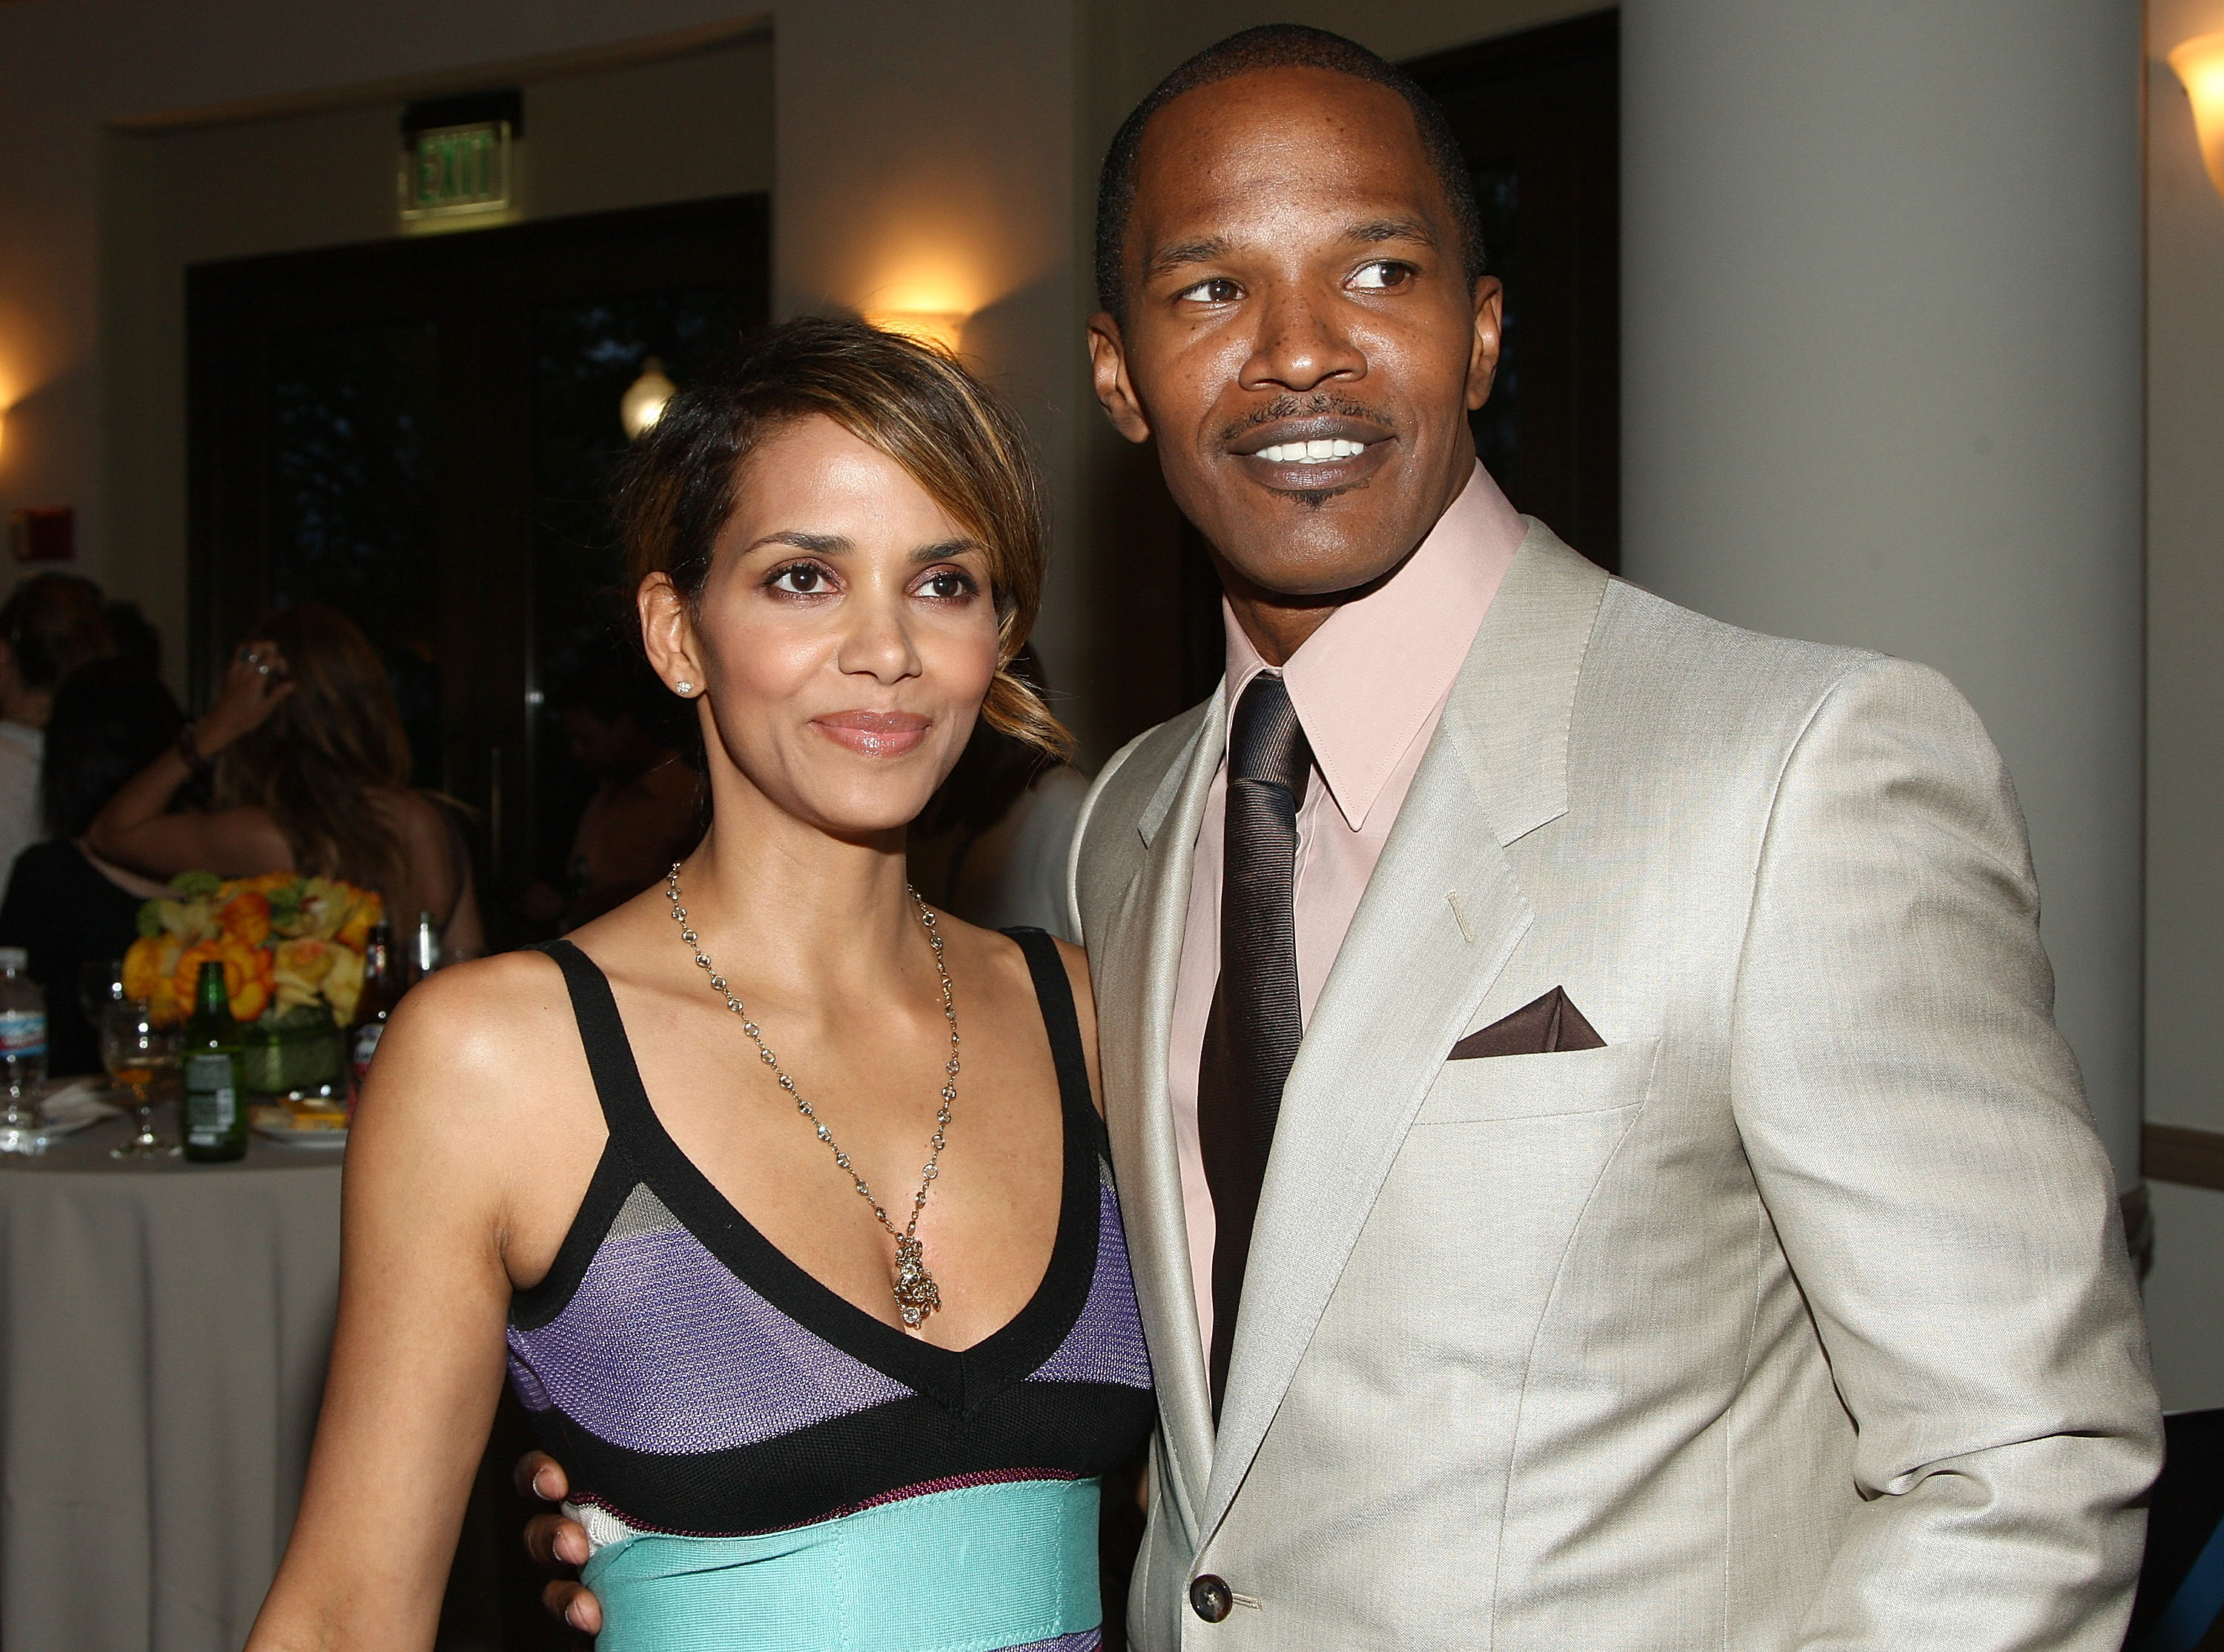 67561_Halle_Berry_The_Soloist_premiere_in_Los_Angeles_02_122_48lo.jpg